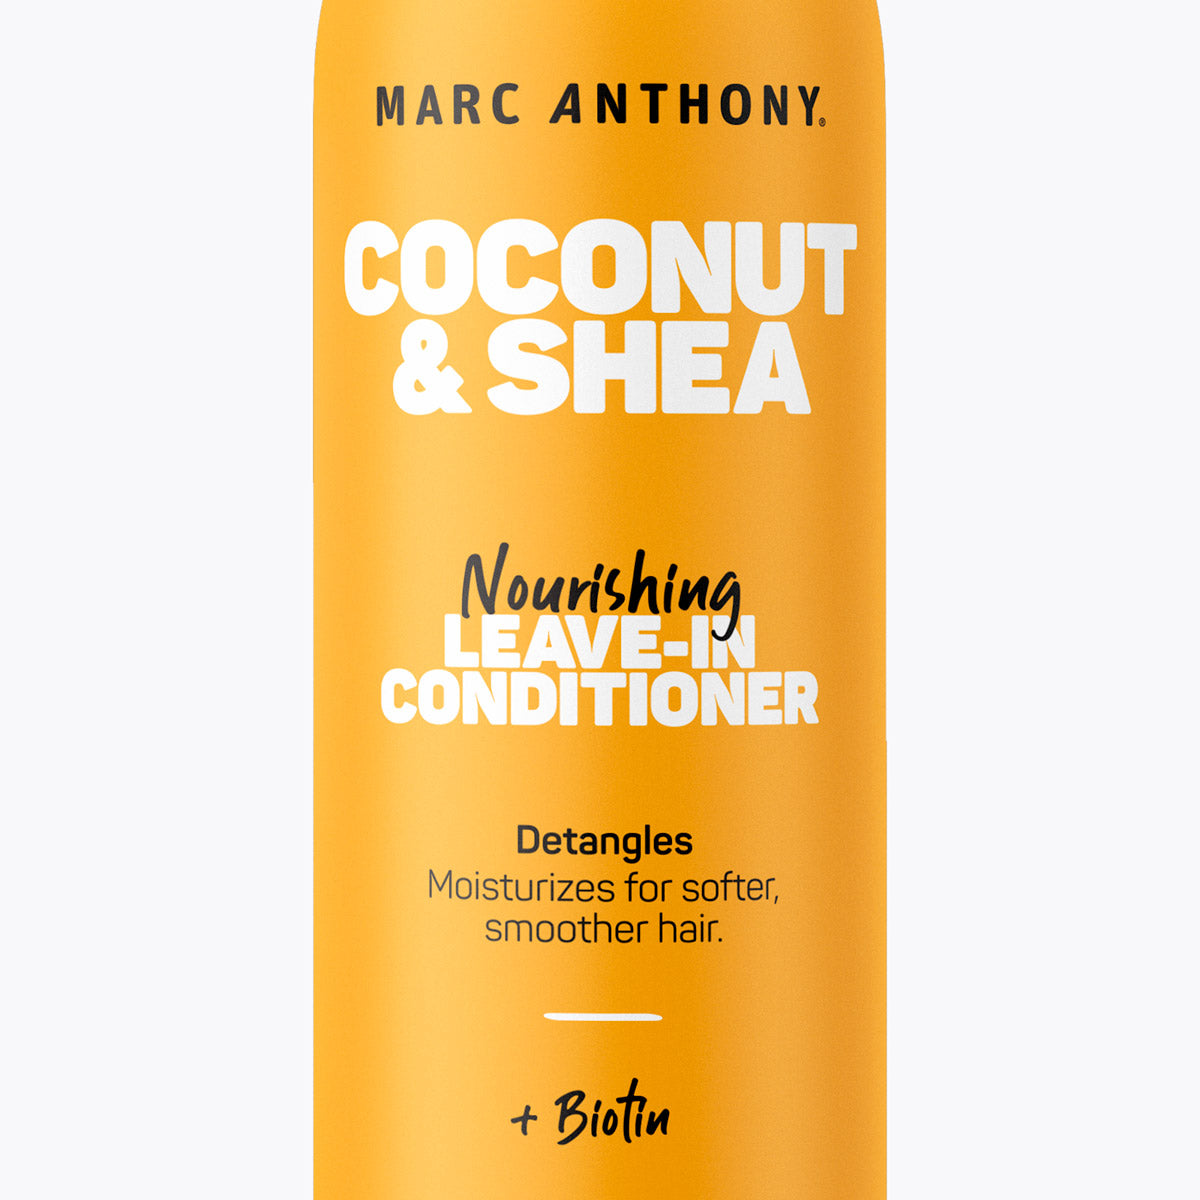 Coconut & Shea <br>Nourishing Leave-In Conditioner